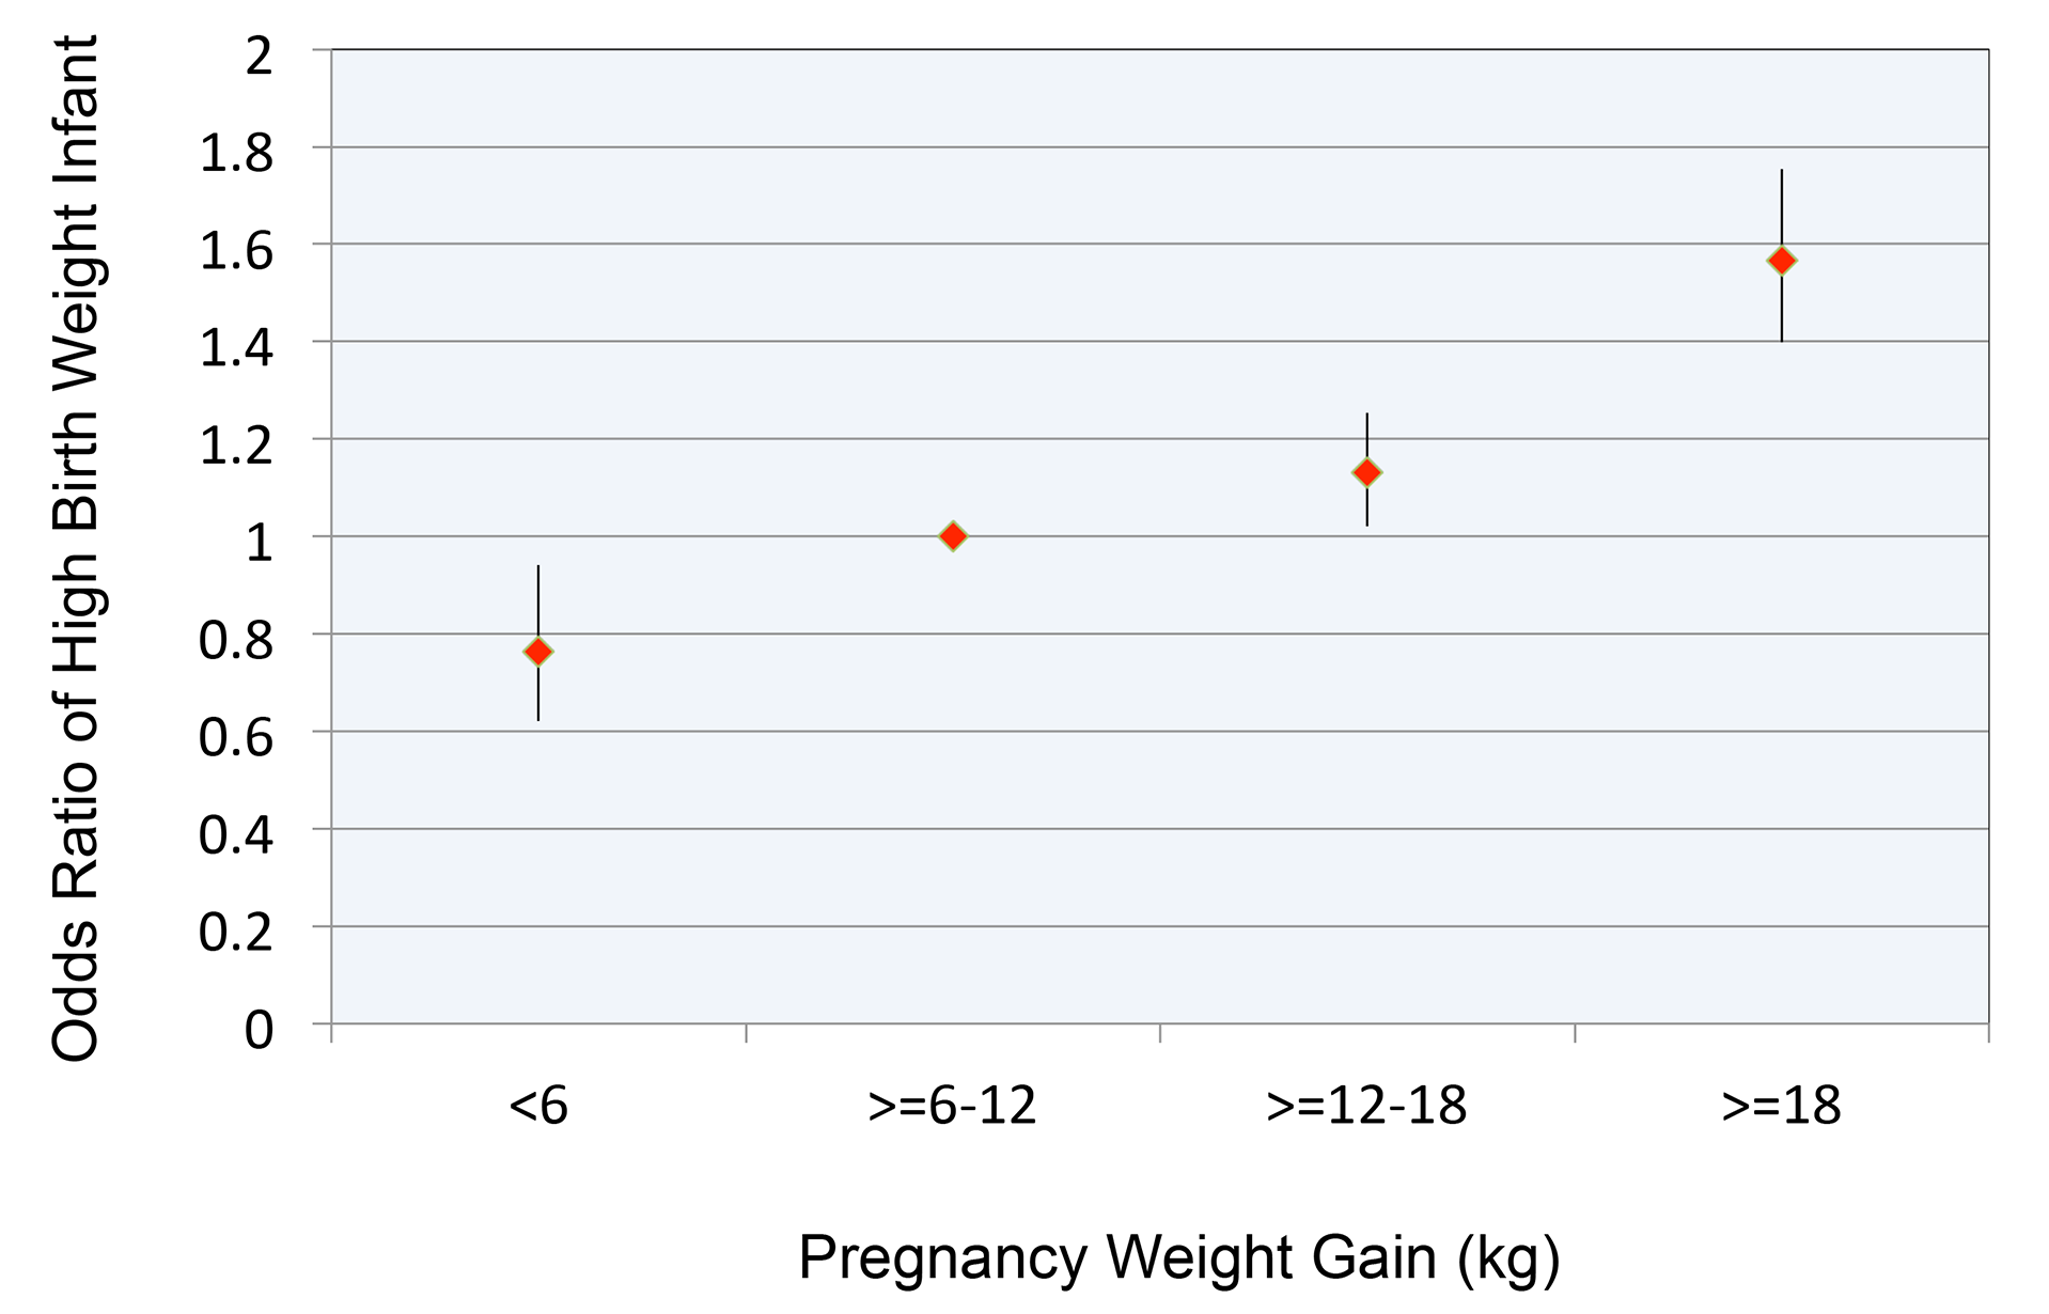 Relationship between pregnancy weight gain and odds ratio for high birth weight infant.